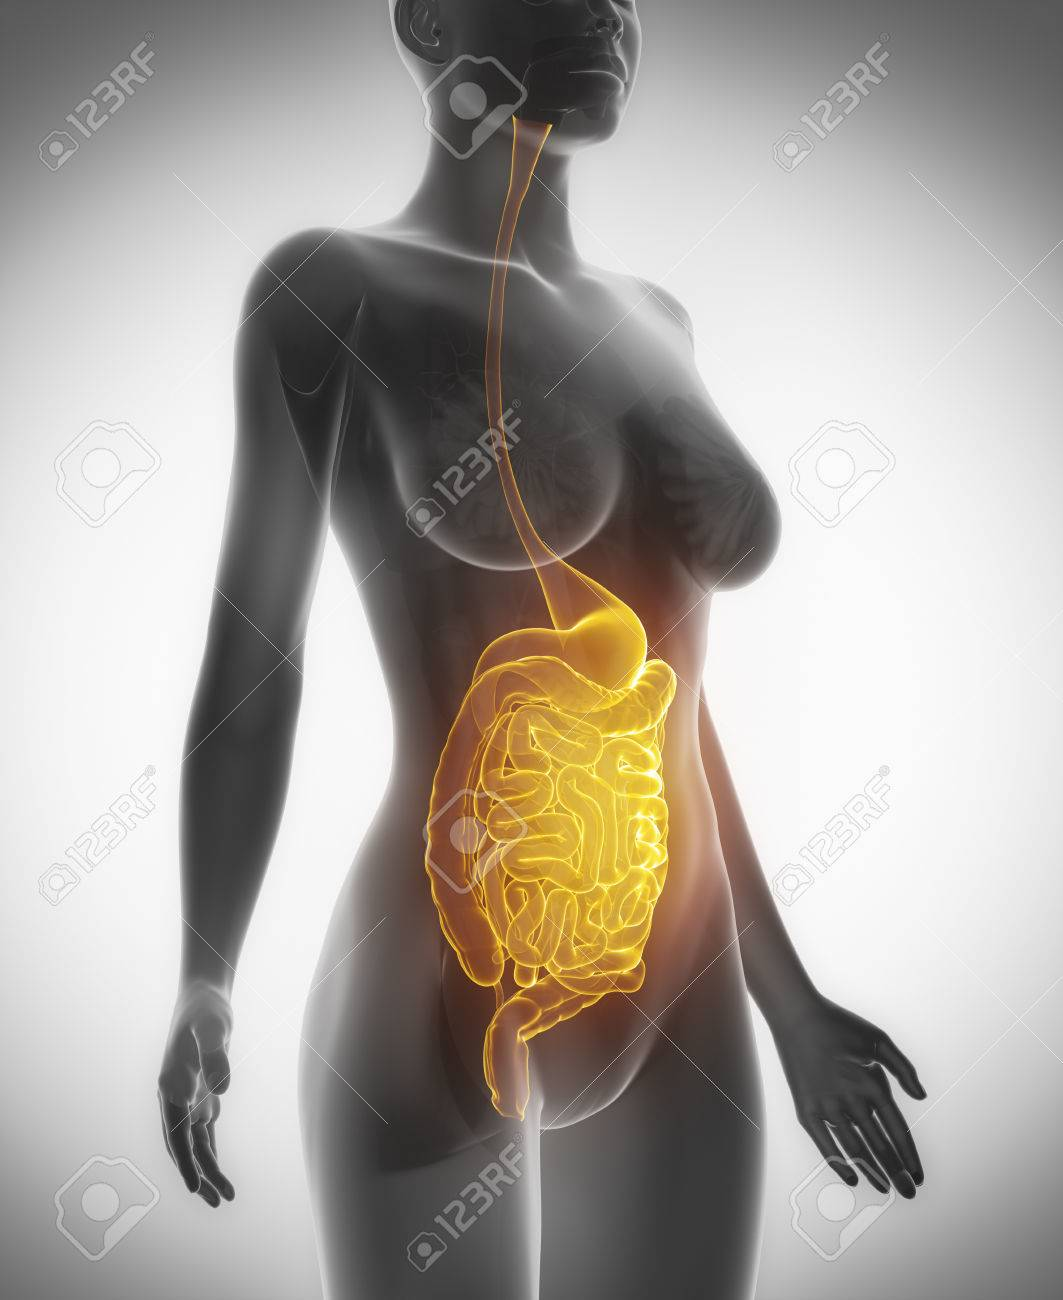 Female Guts And Stomach Anatomy X Ray Scan Stock Photo Picture And